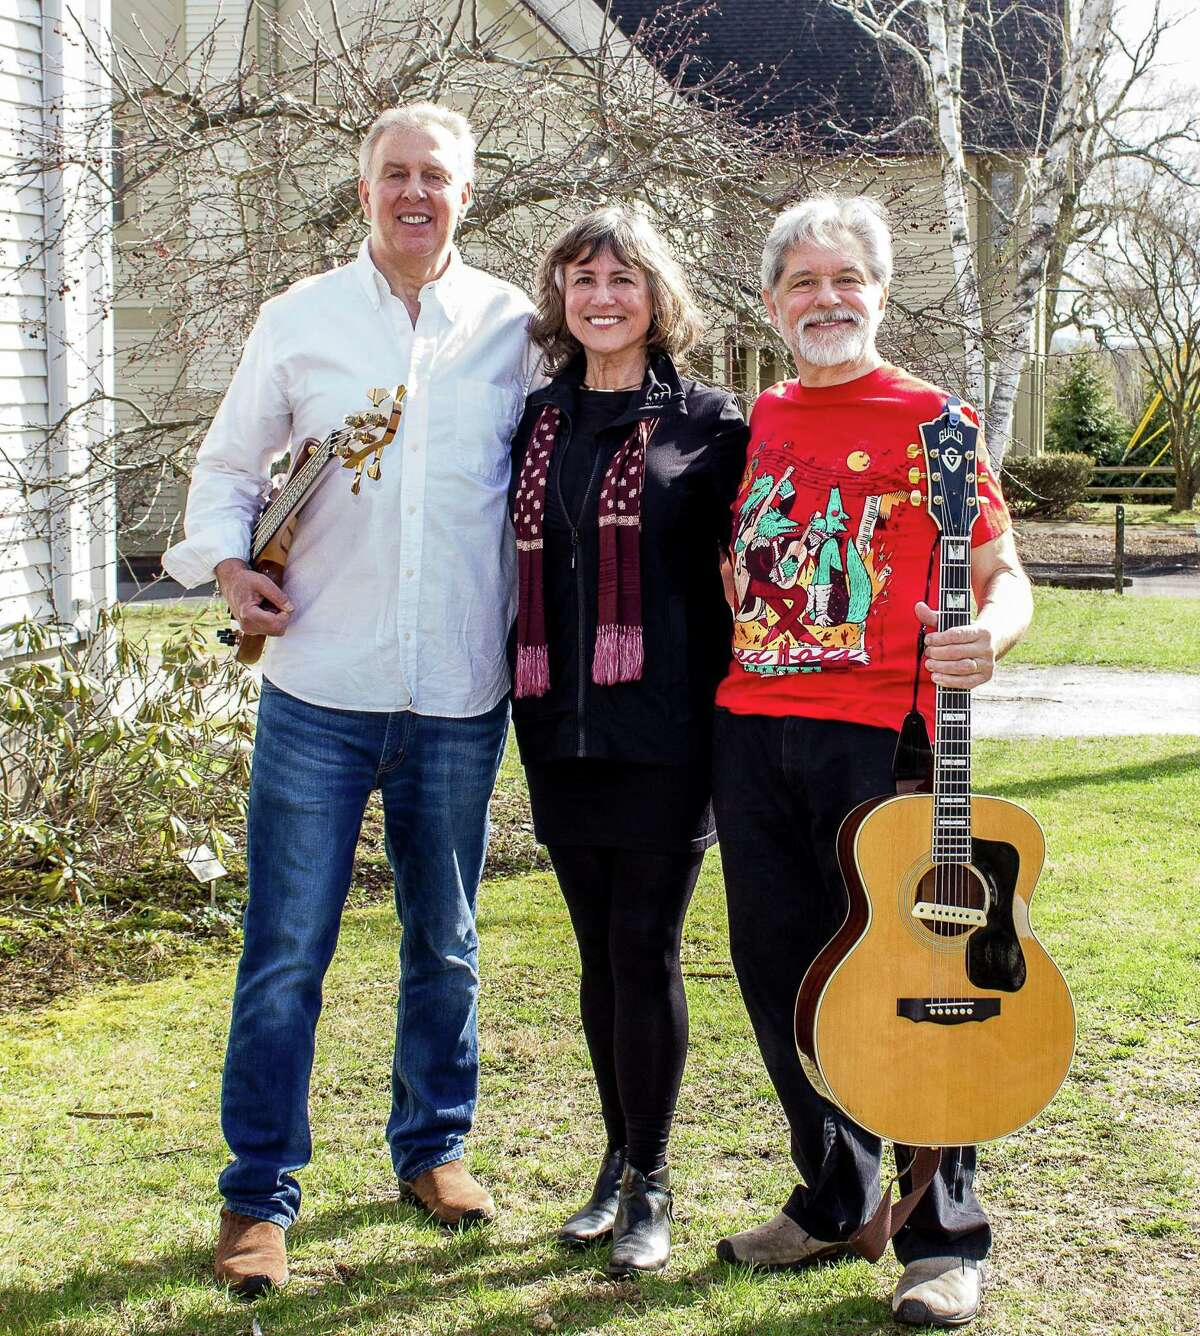 Kent Art Association is hosting two free performances on Make Music Day June 21 at the KAA Gallery, including one by Hummingbird and Friends that includes bassist/harpist Stan Pannone, left, vocalist Bobbi Soares and guitarist Jim Stasiak.